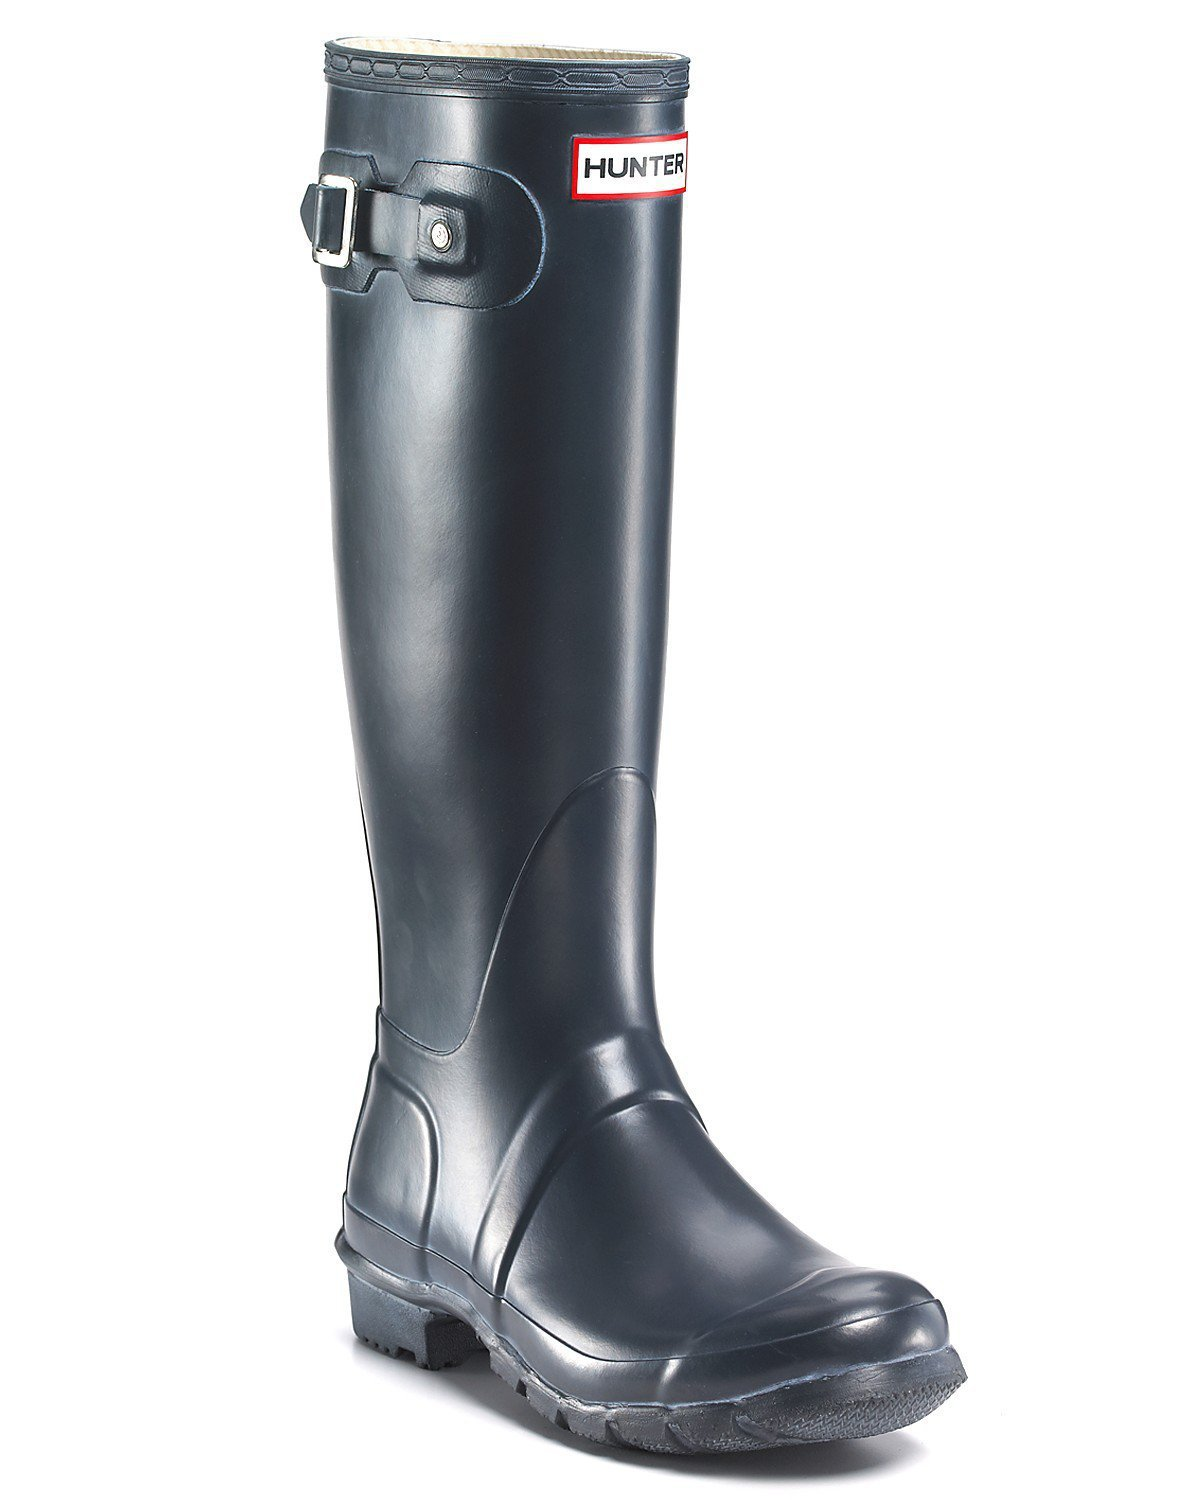 Hunter Women's Original Rain Boots - Navy | Bloomingdale's